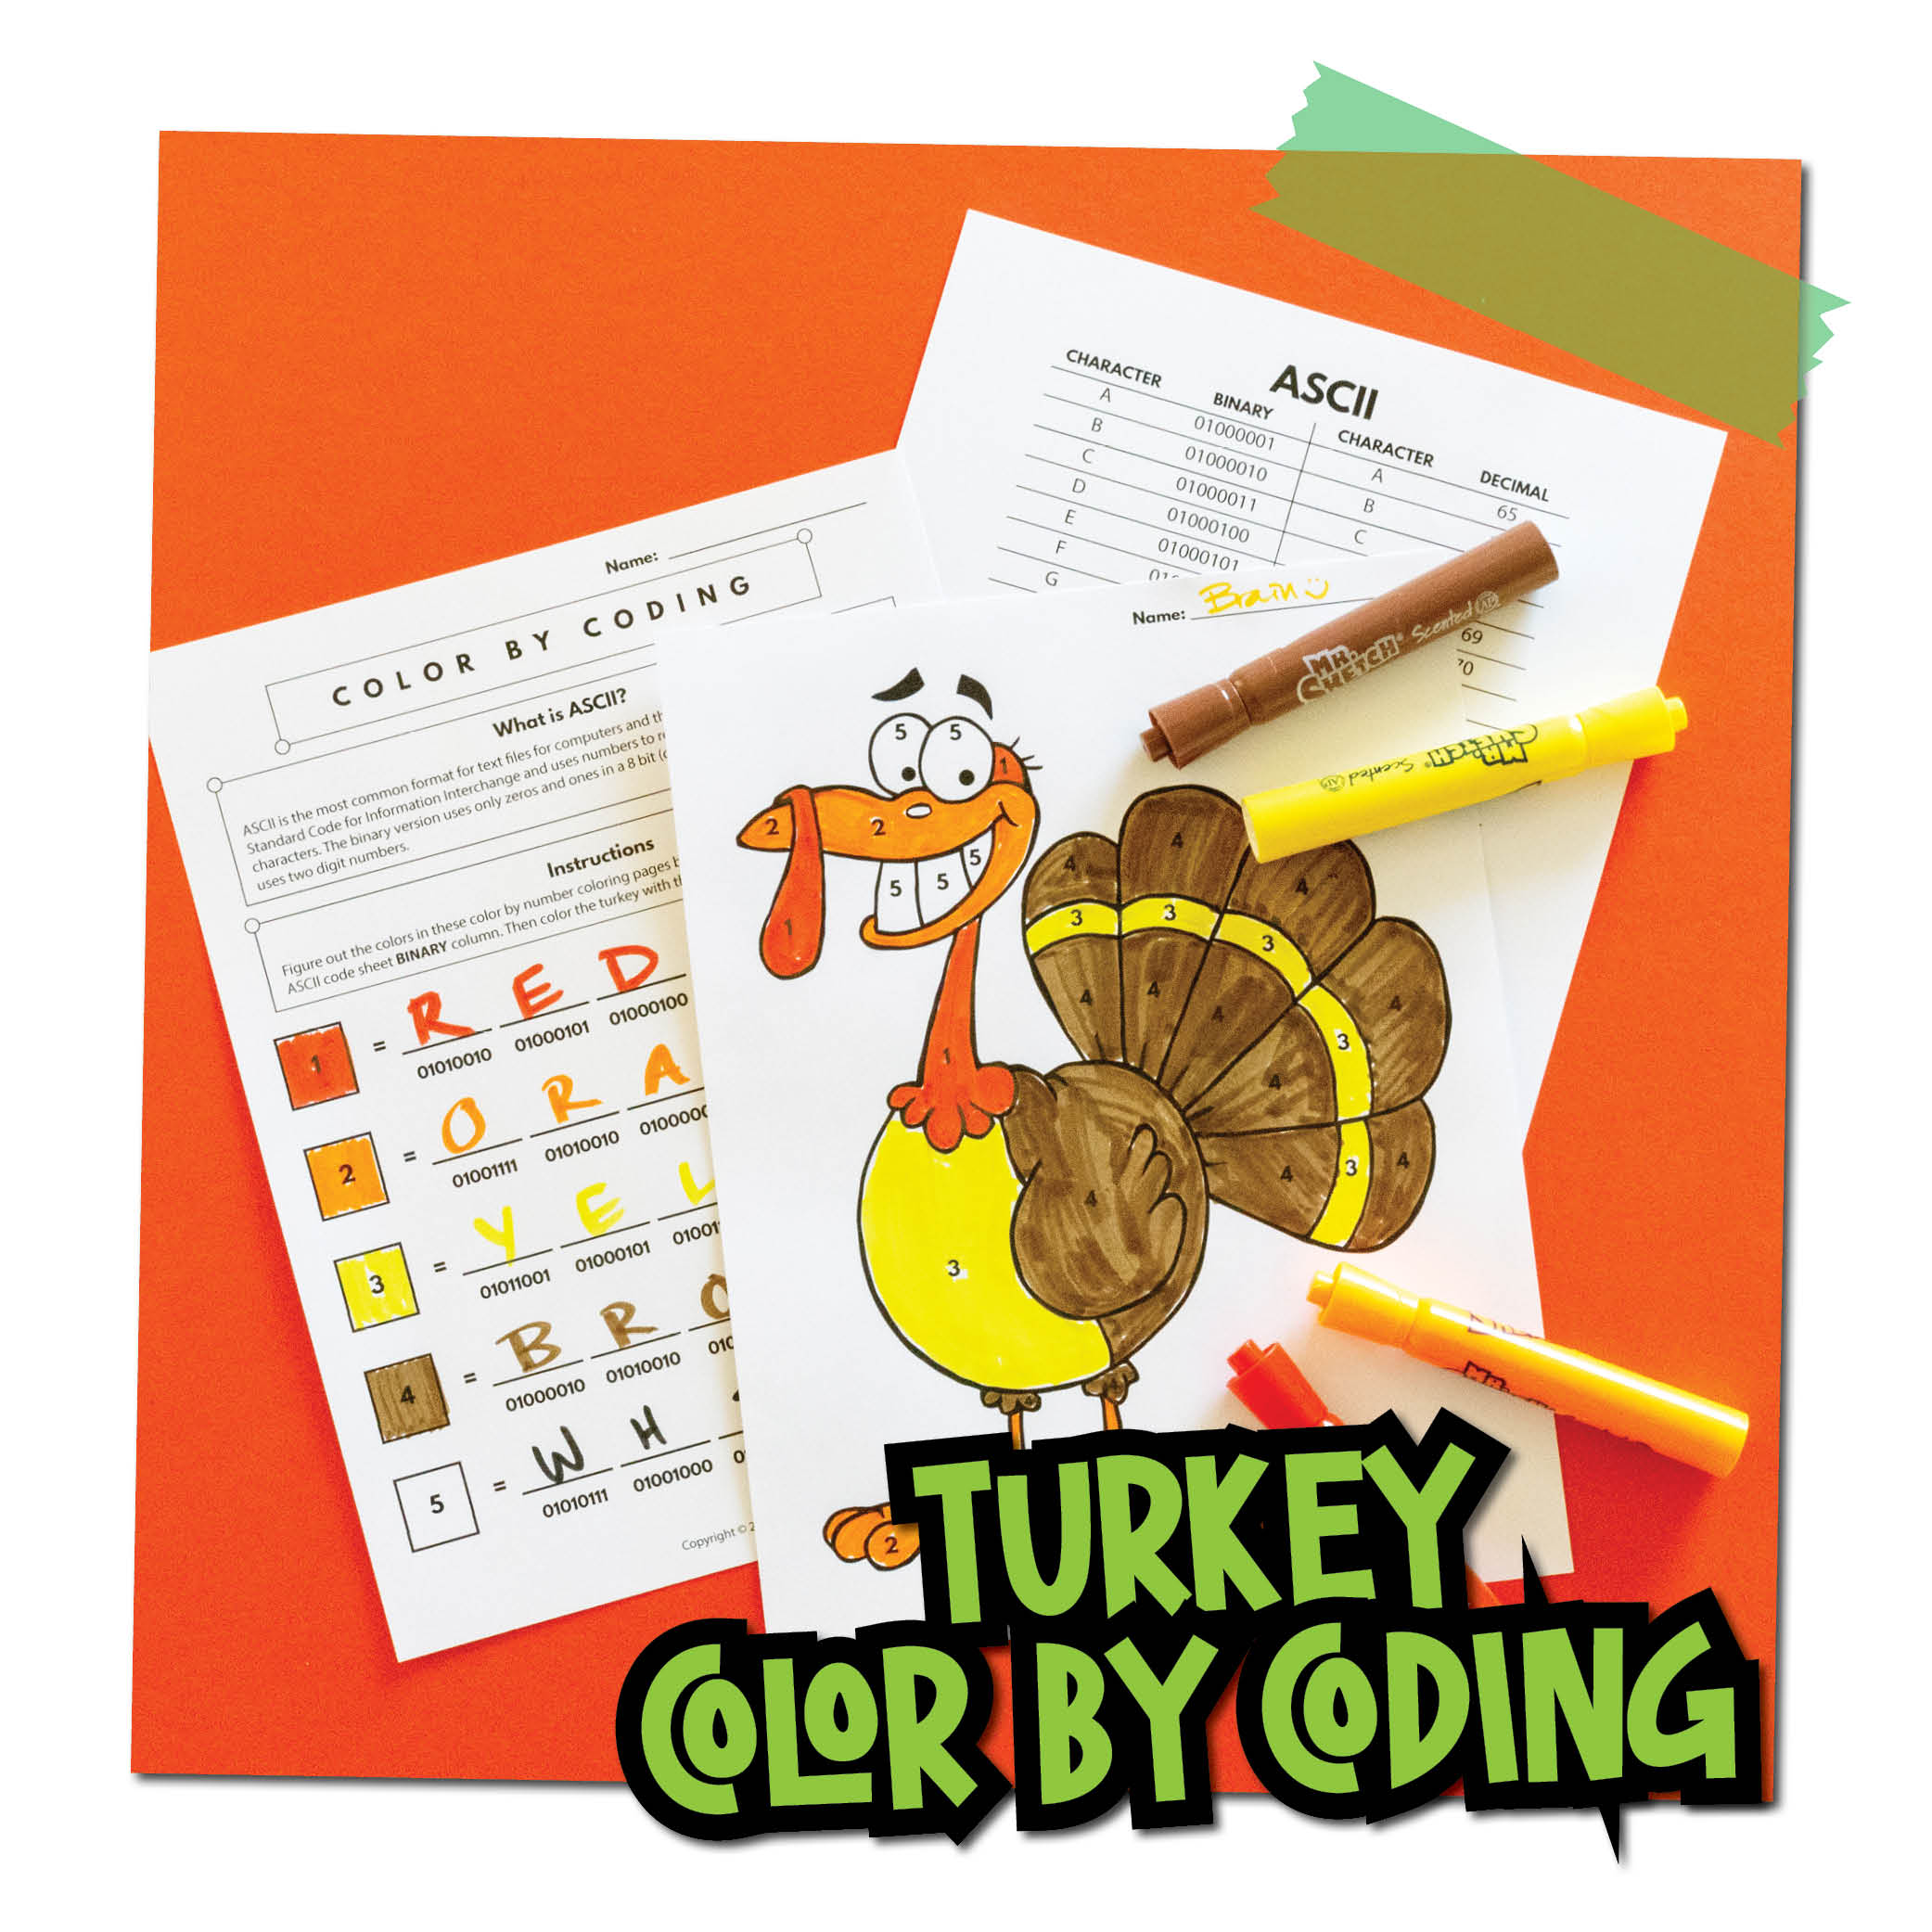 Turkey Color by Coding - Activity Pic